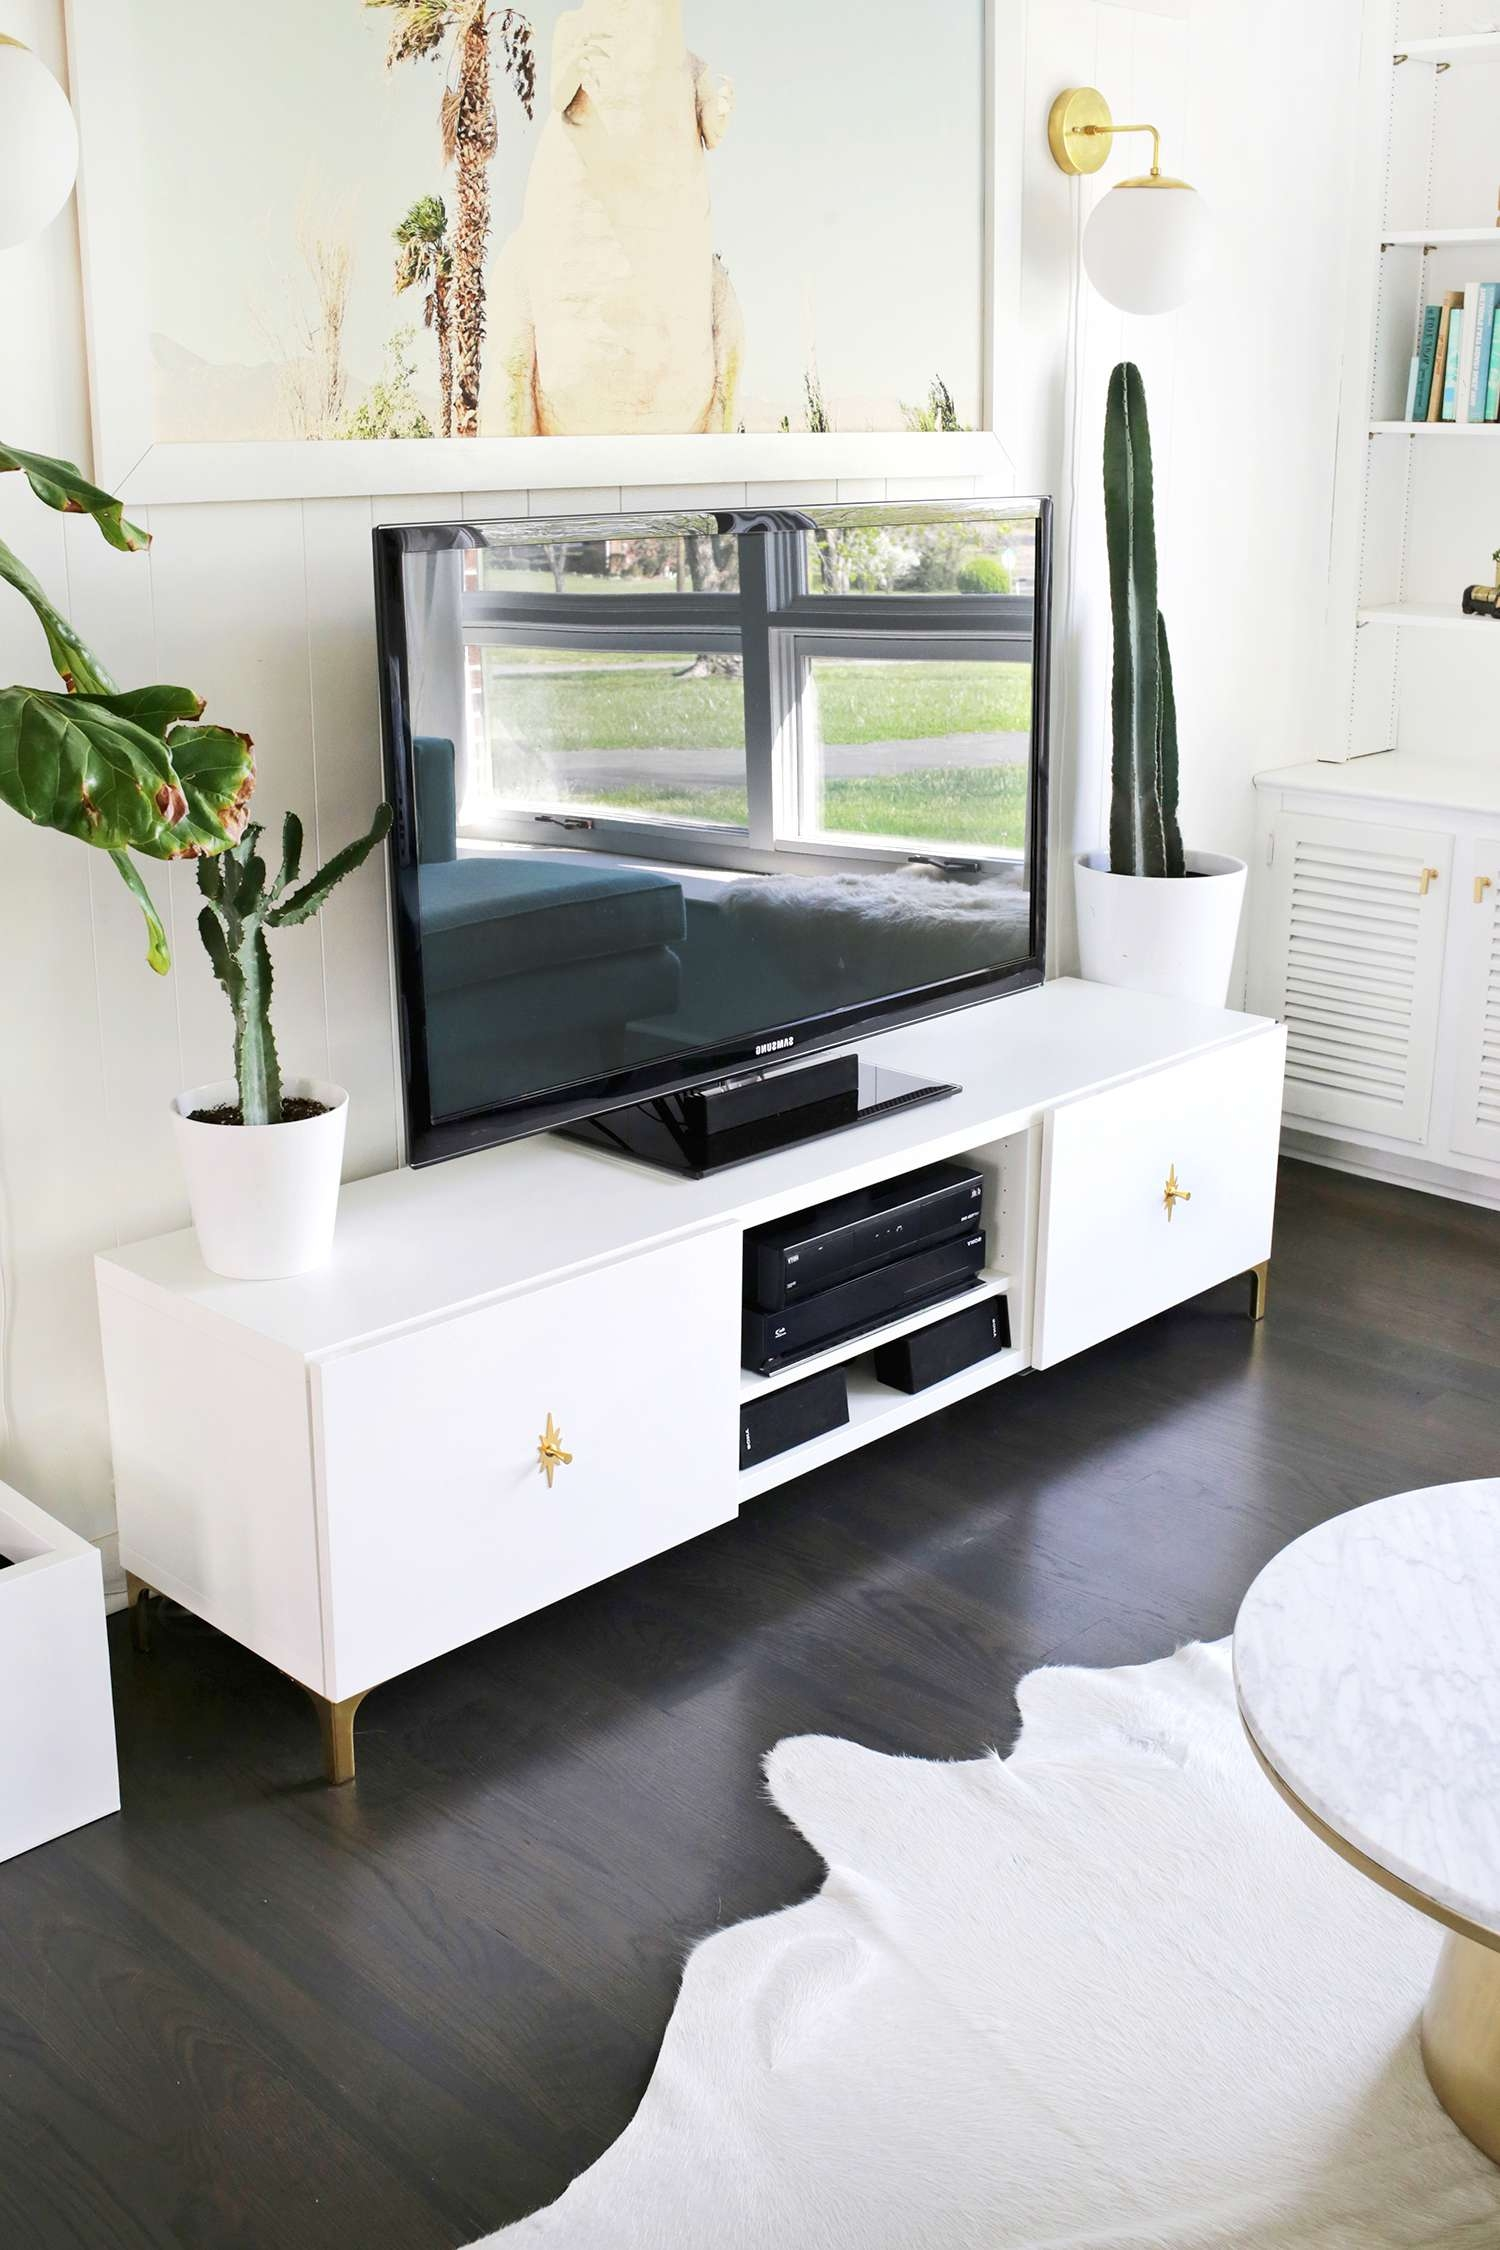 Furniture Accessories : Diy Ikea Tv Stand Ideas Long White Wooden Throughout Long White Tv Stands (View 6 of 15)